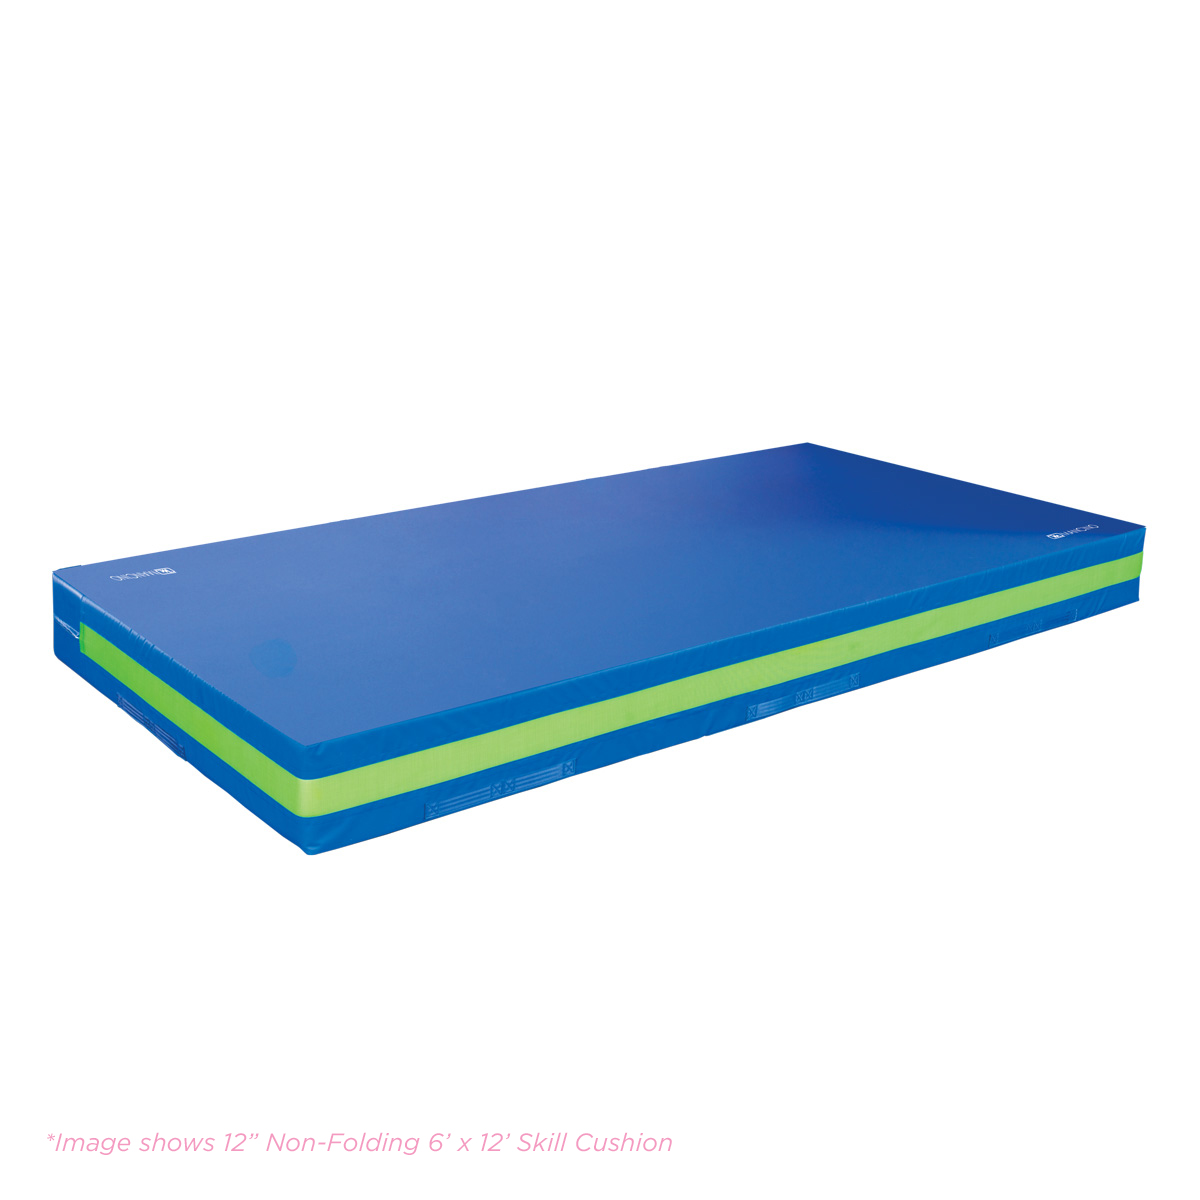 "12"" incher landing mat skill cushion"